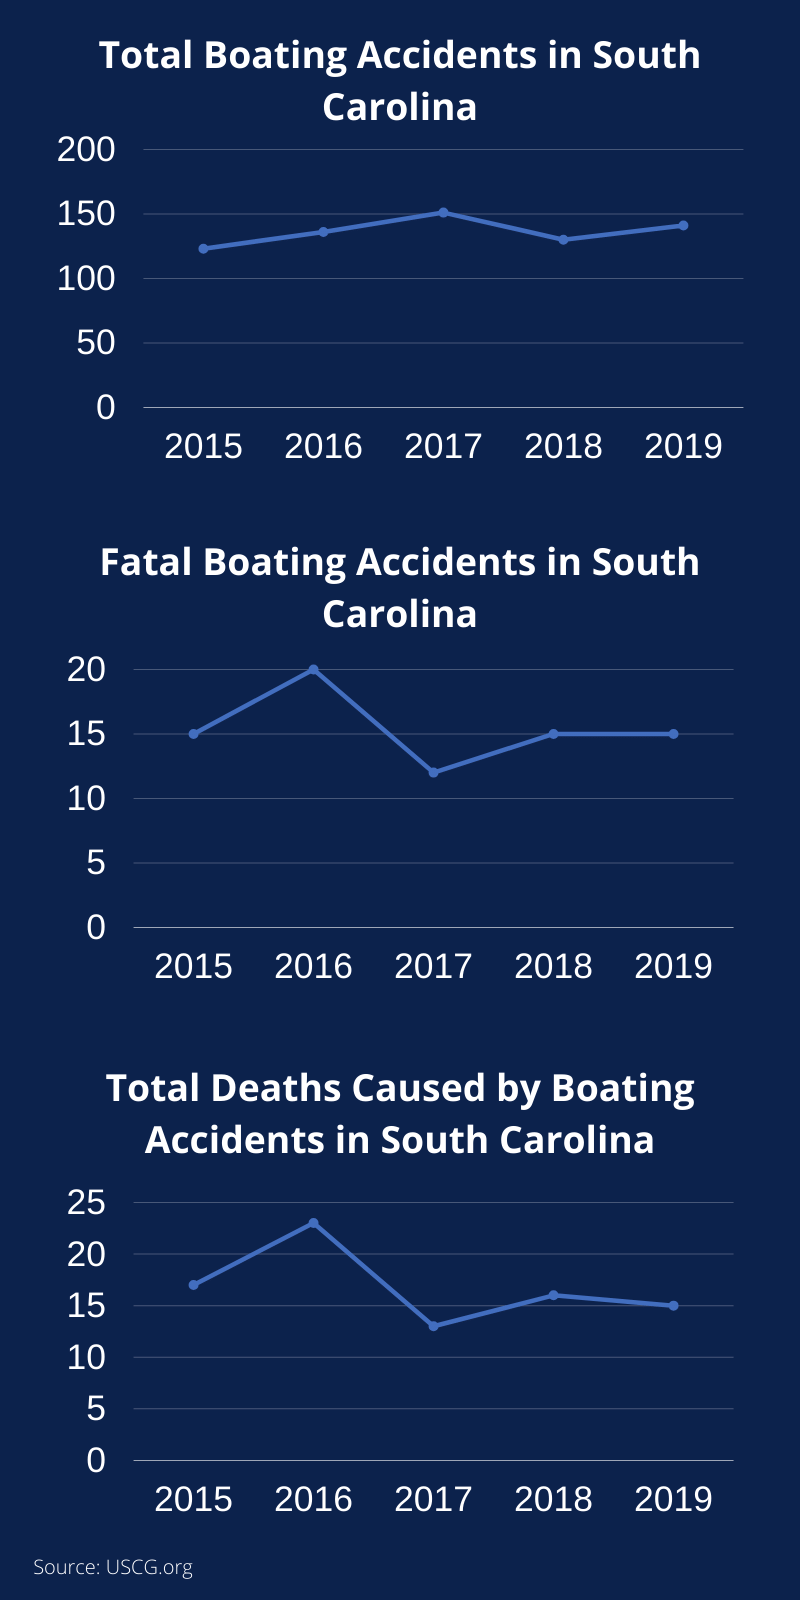 Charts showing boating accidents and deaths over the past 5 years in SC